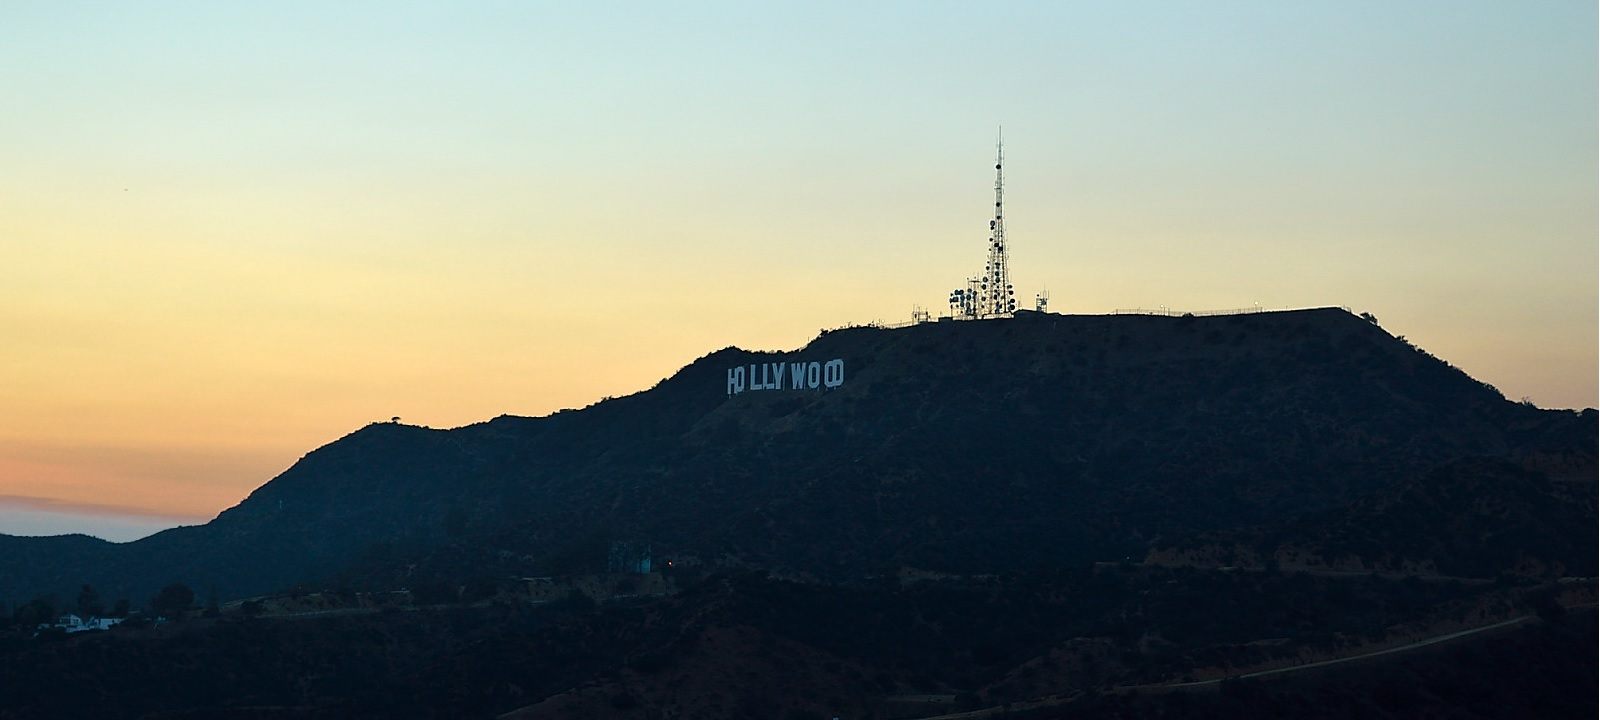 Where the stars live. Hiking to the Hollywood sign in Los Angeles.